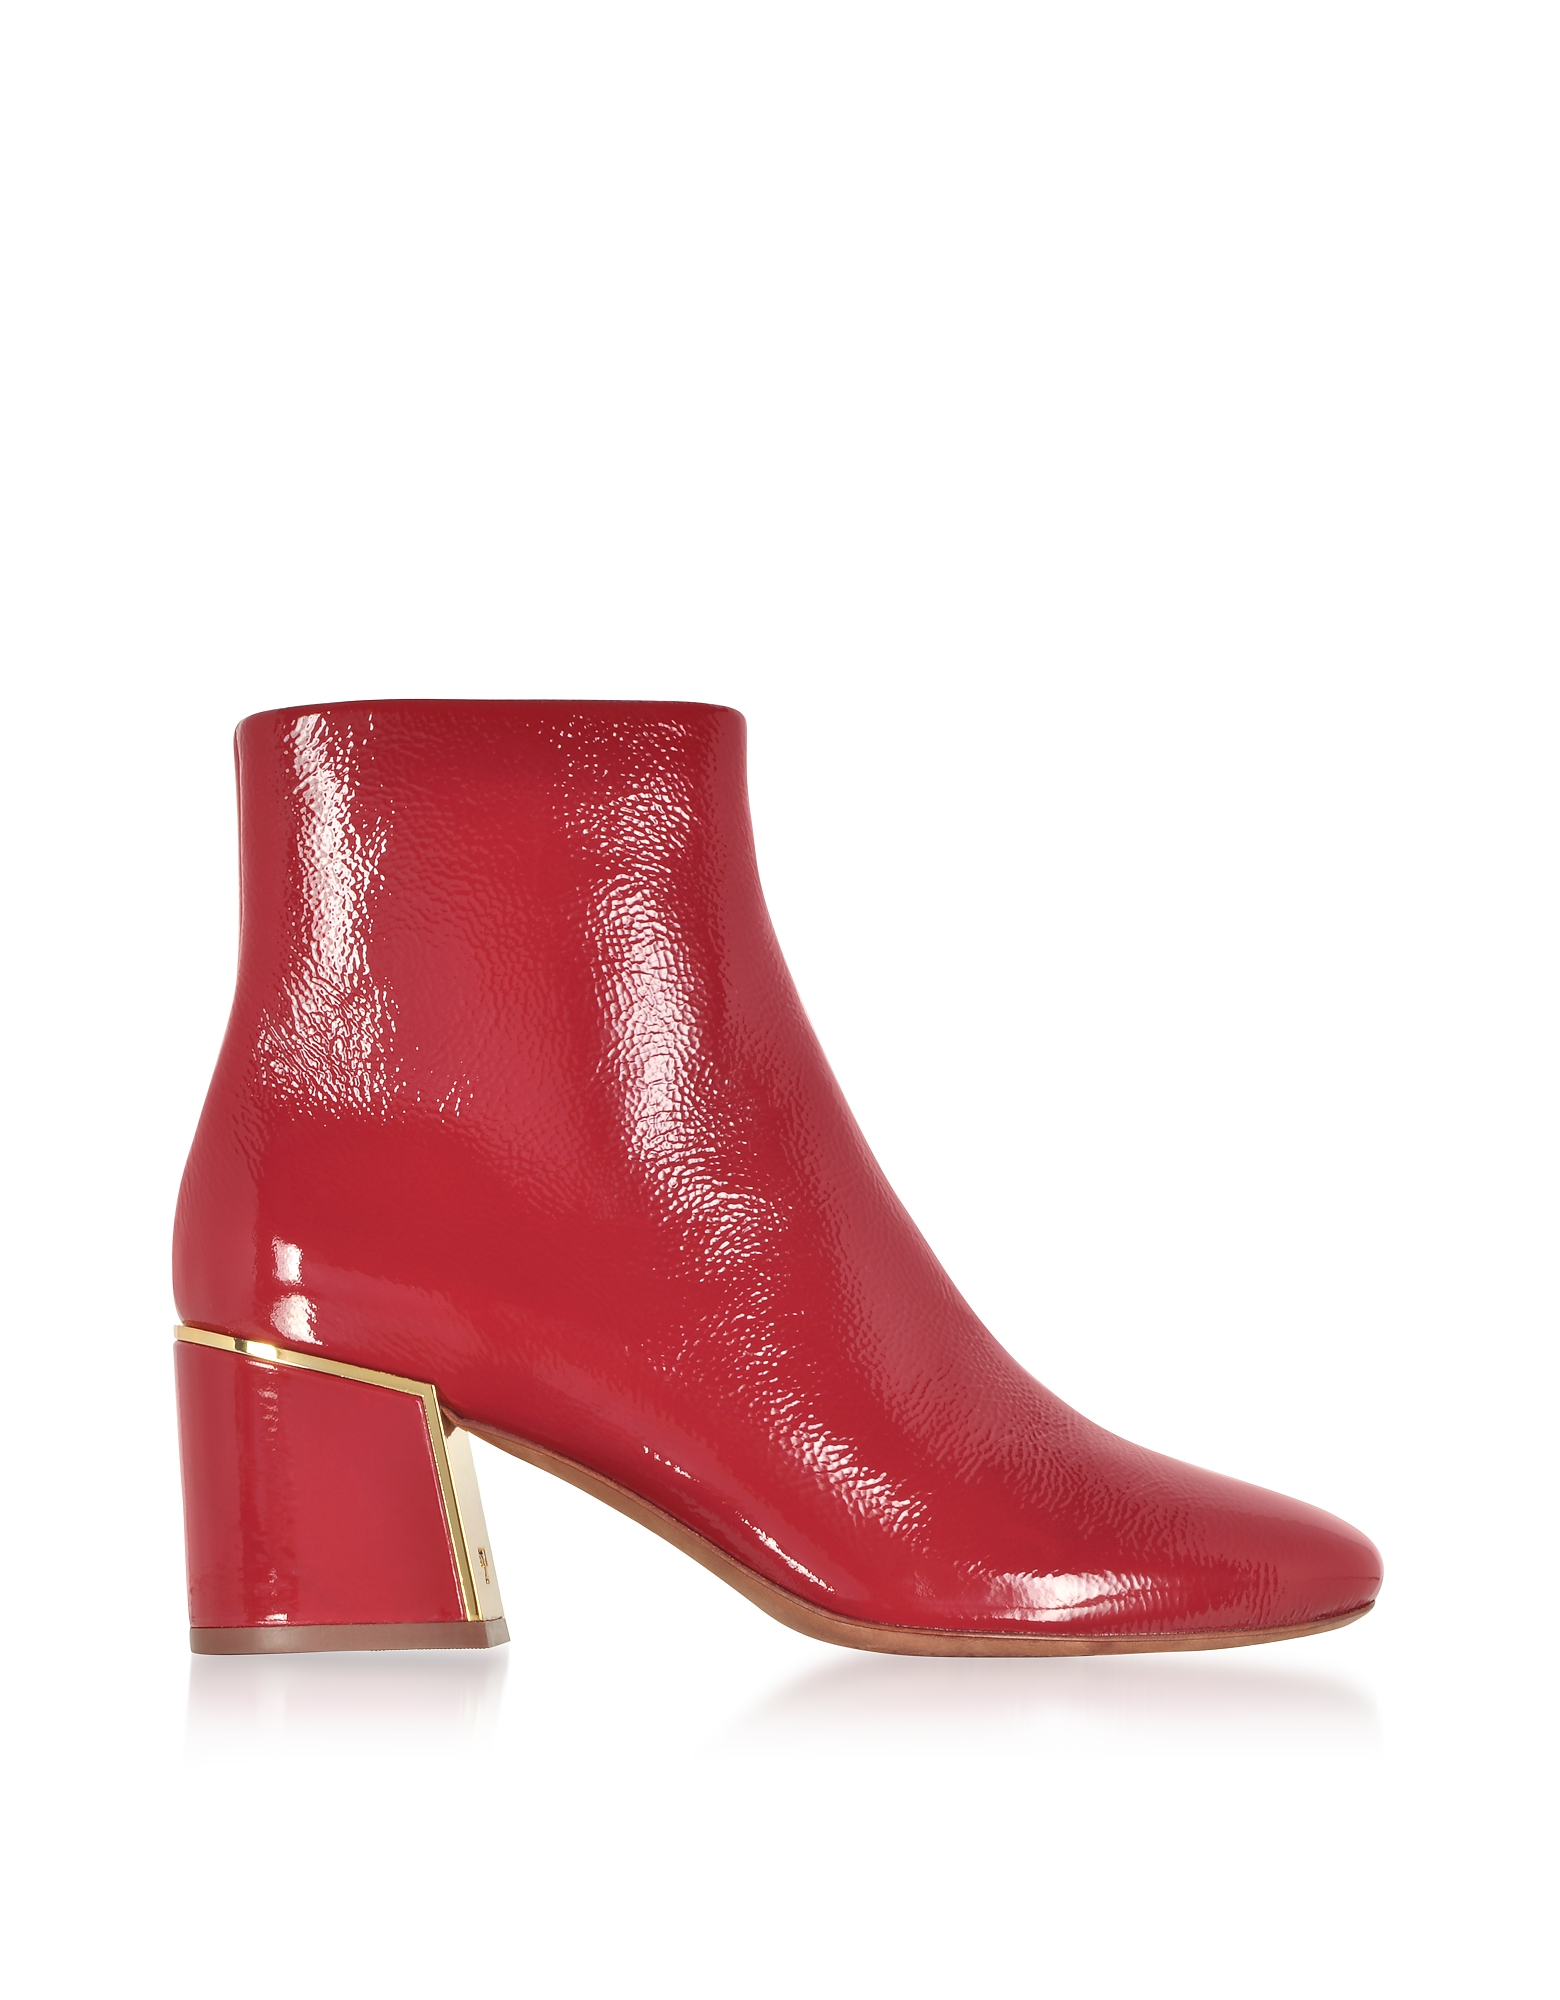 Dark Redstone Juliana Booties, Burgundy